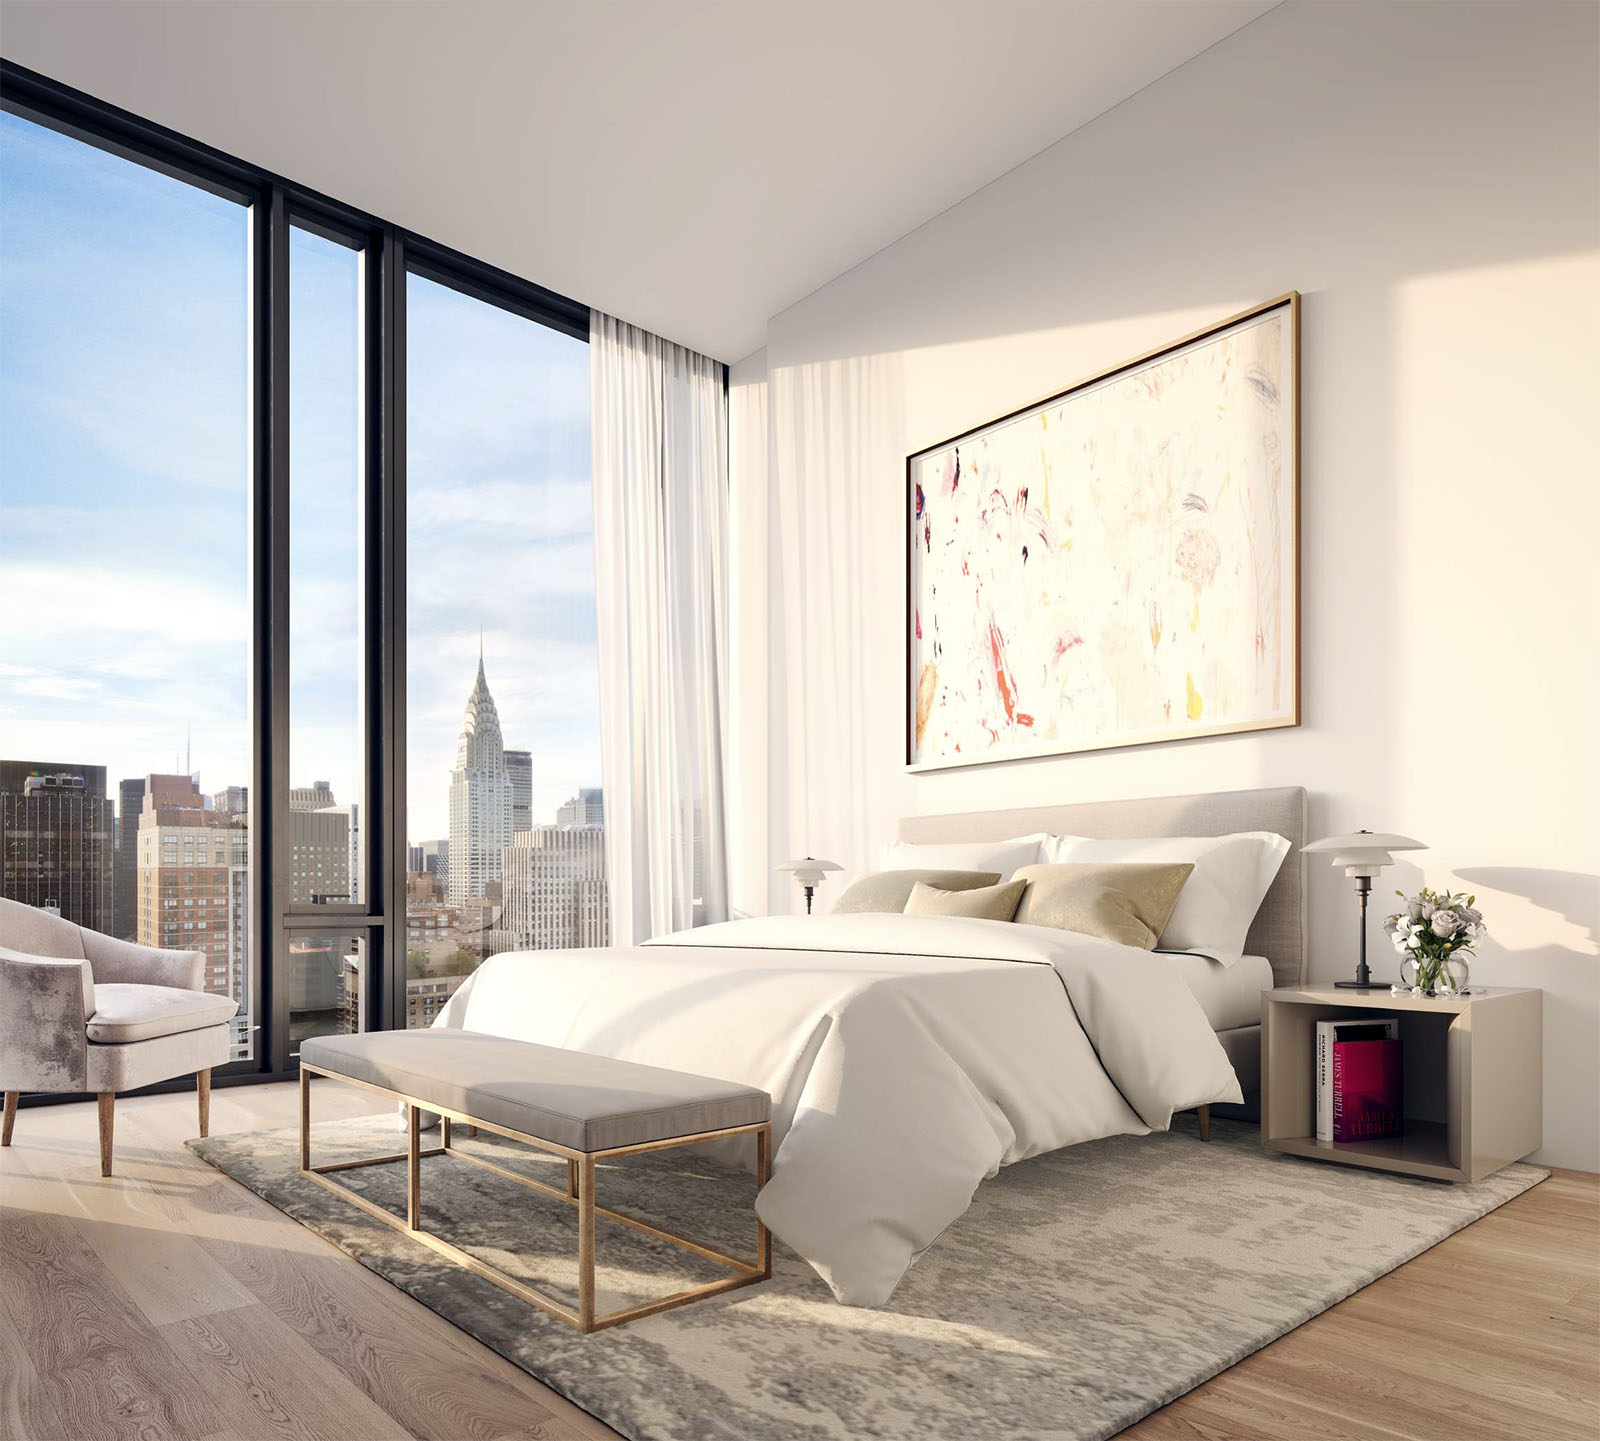 Condos in Manhattan with Views